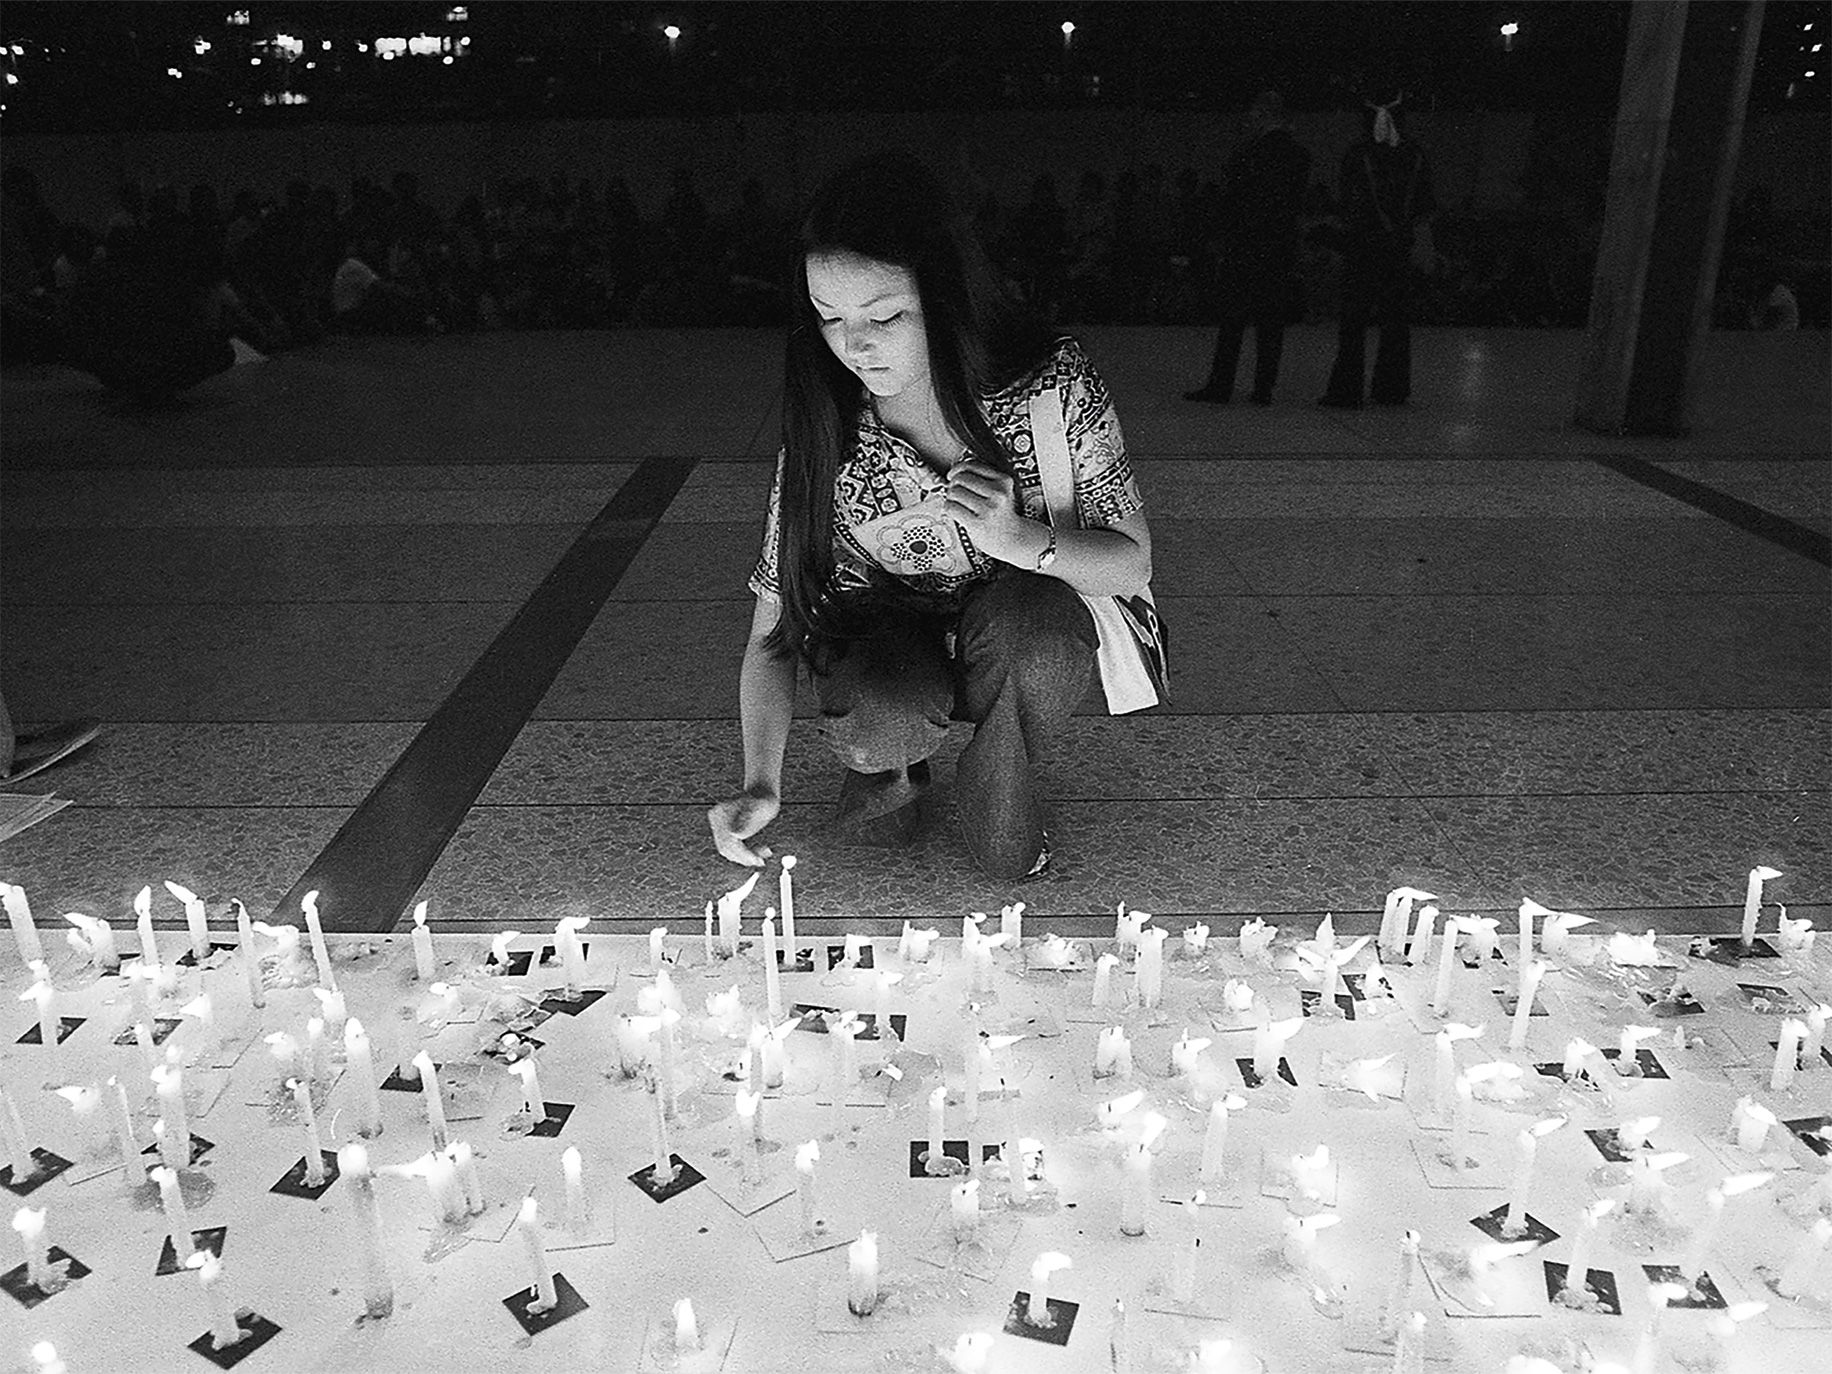 A young woman pays tribute to Hiroshima and Nagasaki atomic bomb victims at a candlelight memorial in Los Angeles's Little Tokyo, August 8, 1972.